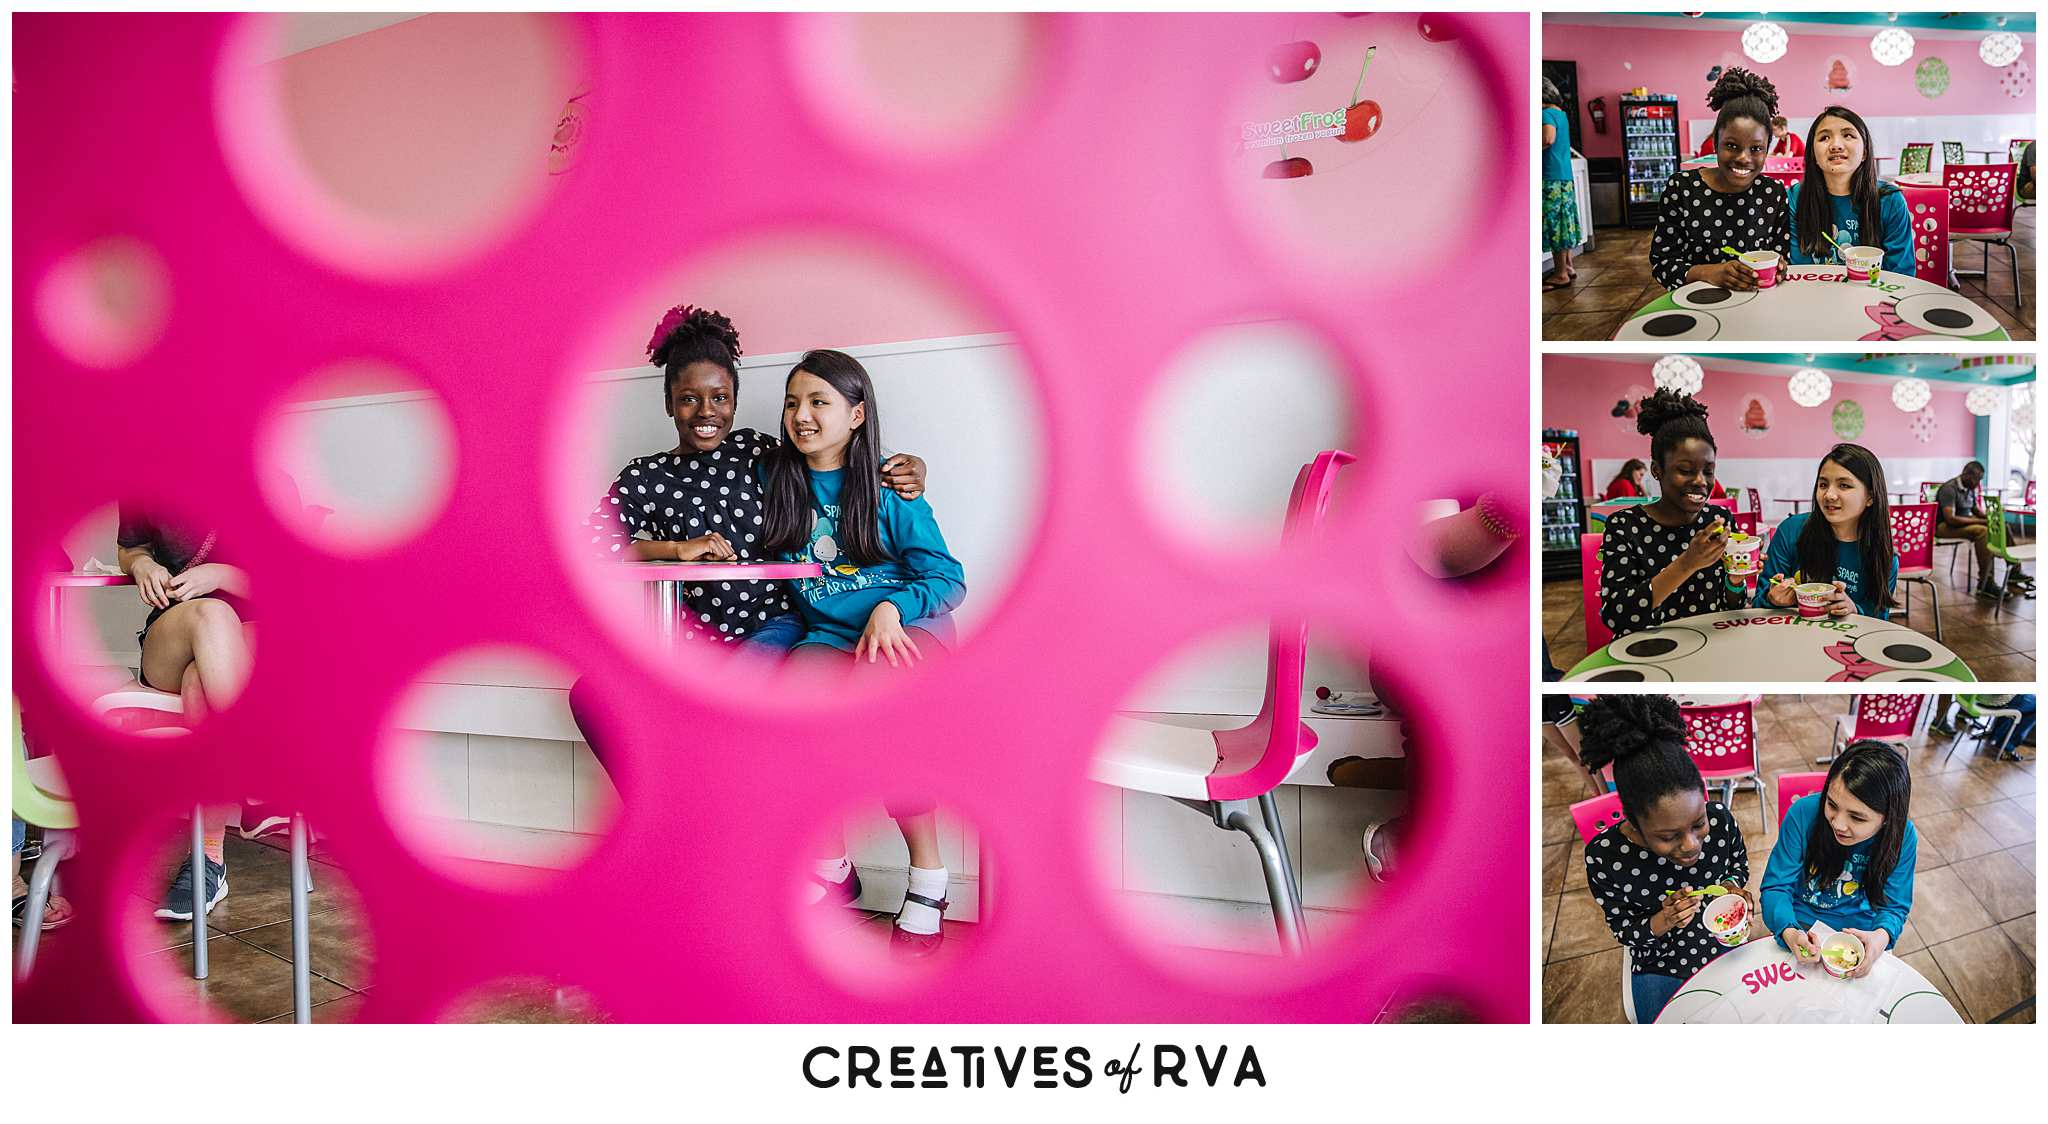 SPARC-CARYTOWN-CREATIVES-OF-RVA-GIANNA_GRACE_PHOTOGRAPHY_0002.jpg